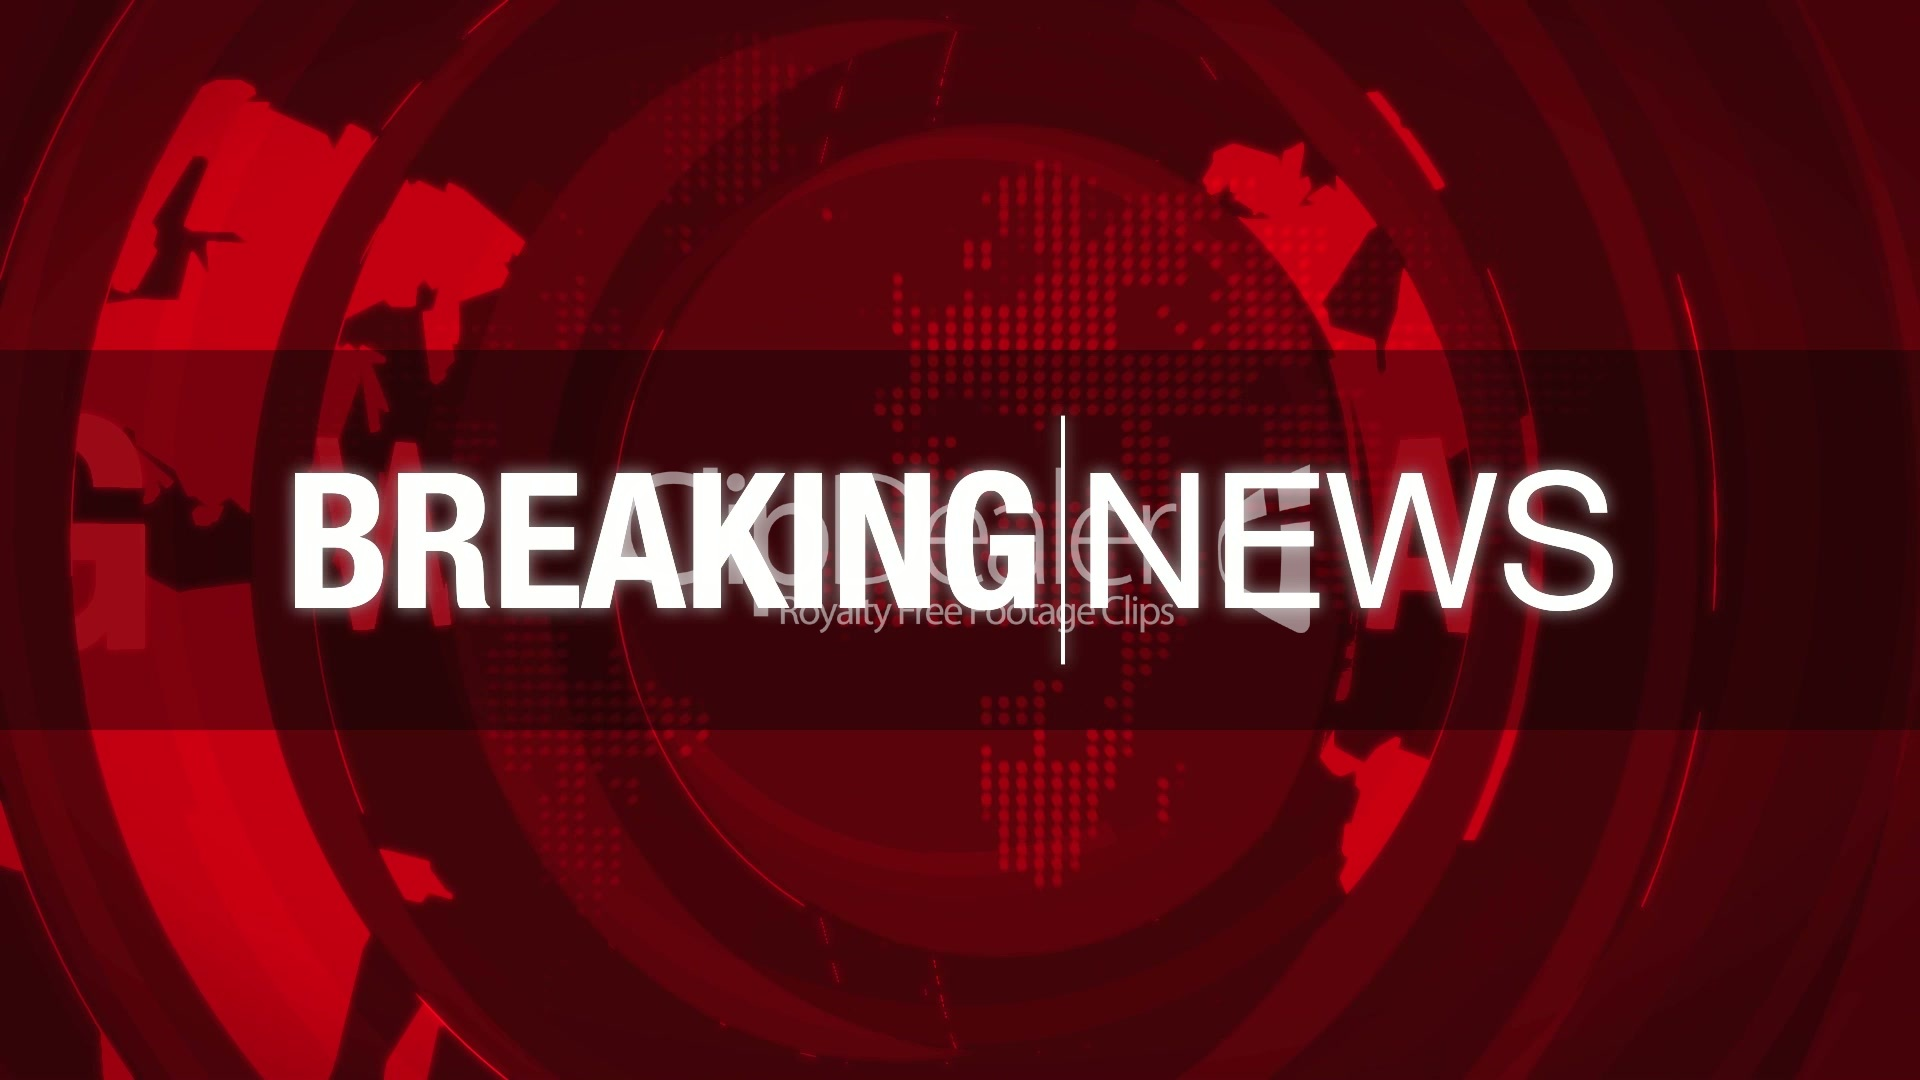 Breaking News Title HD Royalty Free Video And Stock Footage